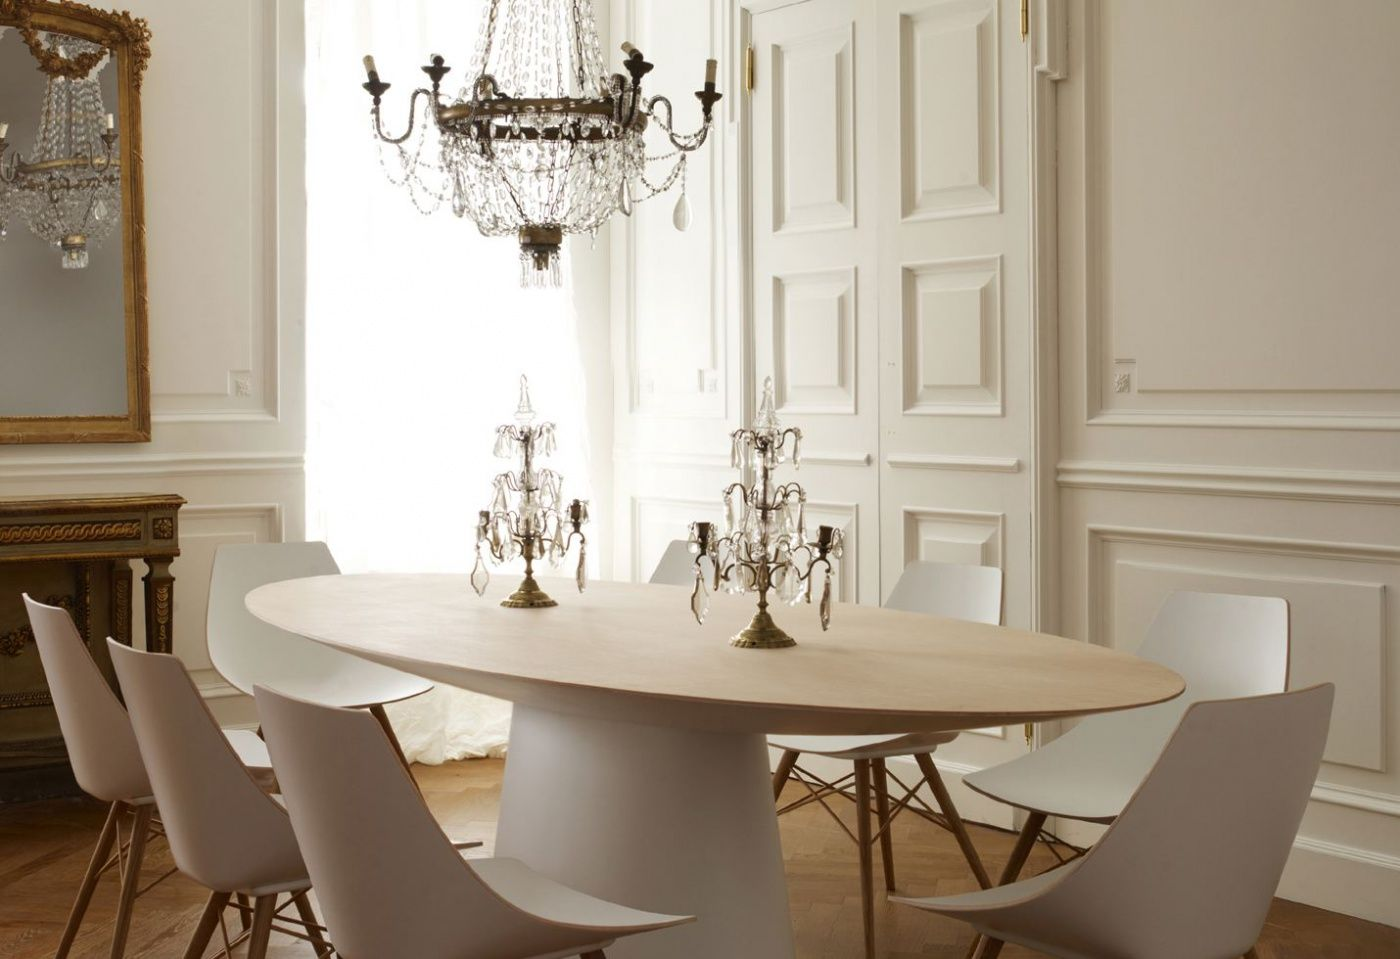 UFO Dining Table By Emmemobili